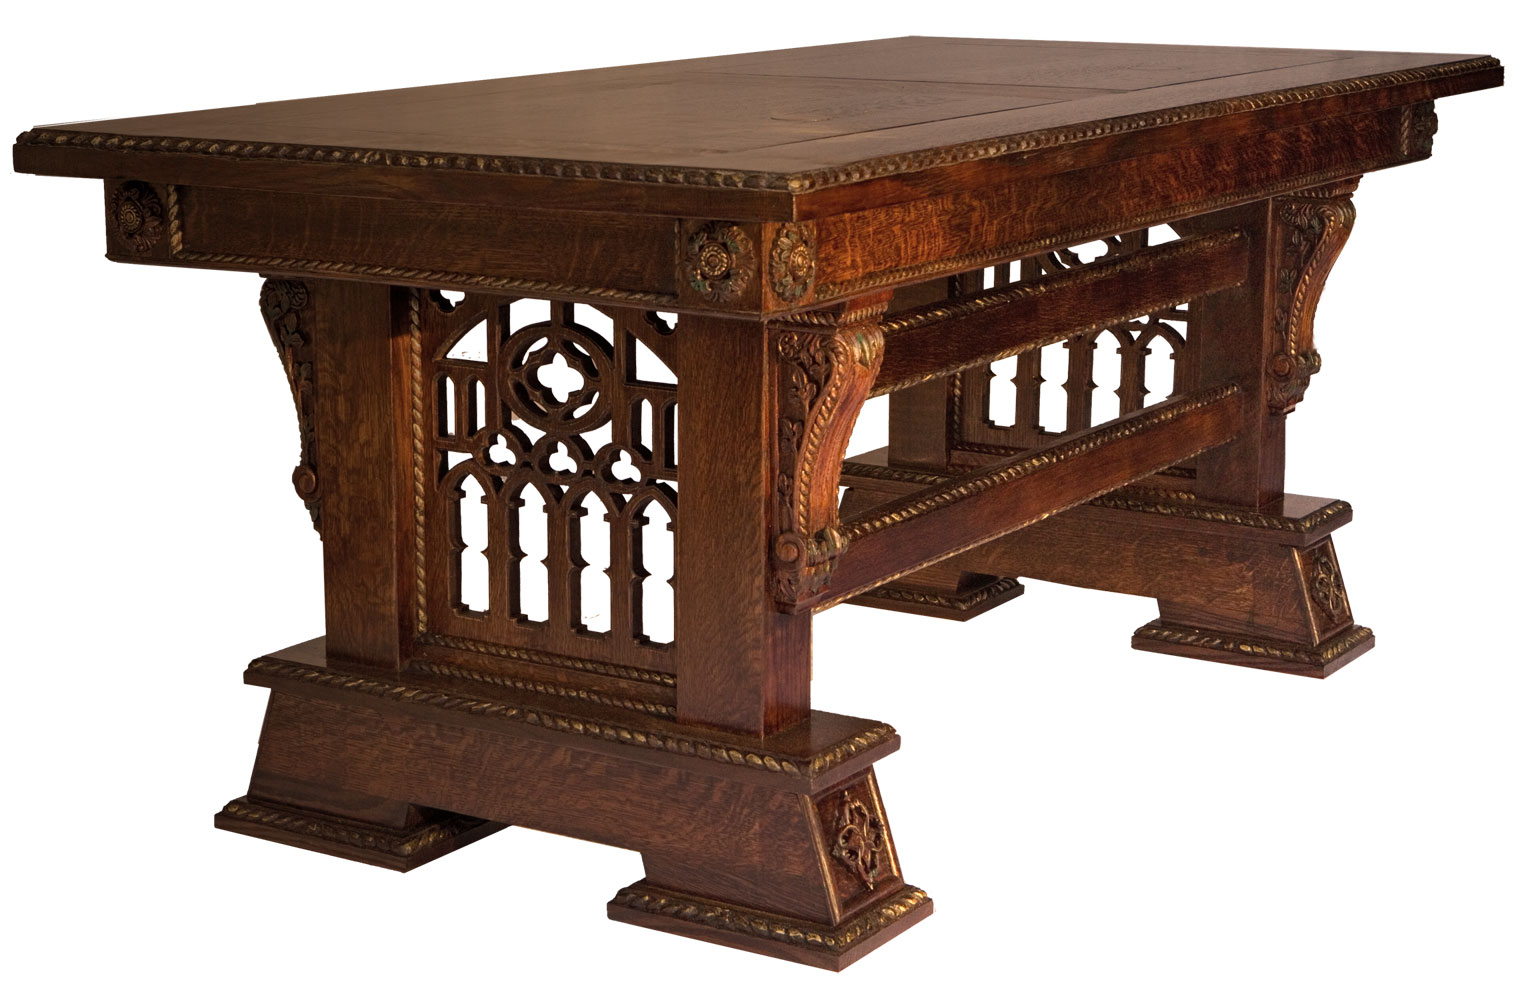 custom made hand carved new wave gothic desk library table by artisans of